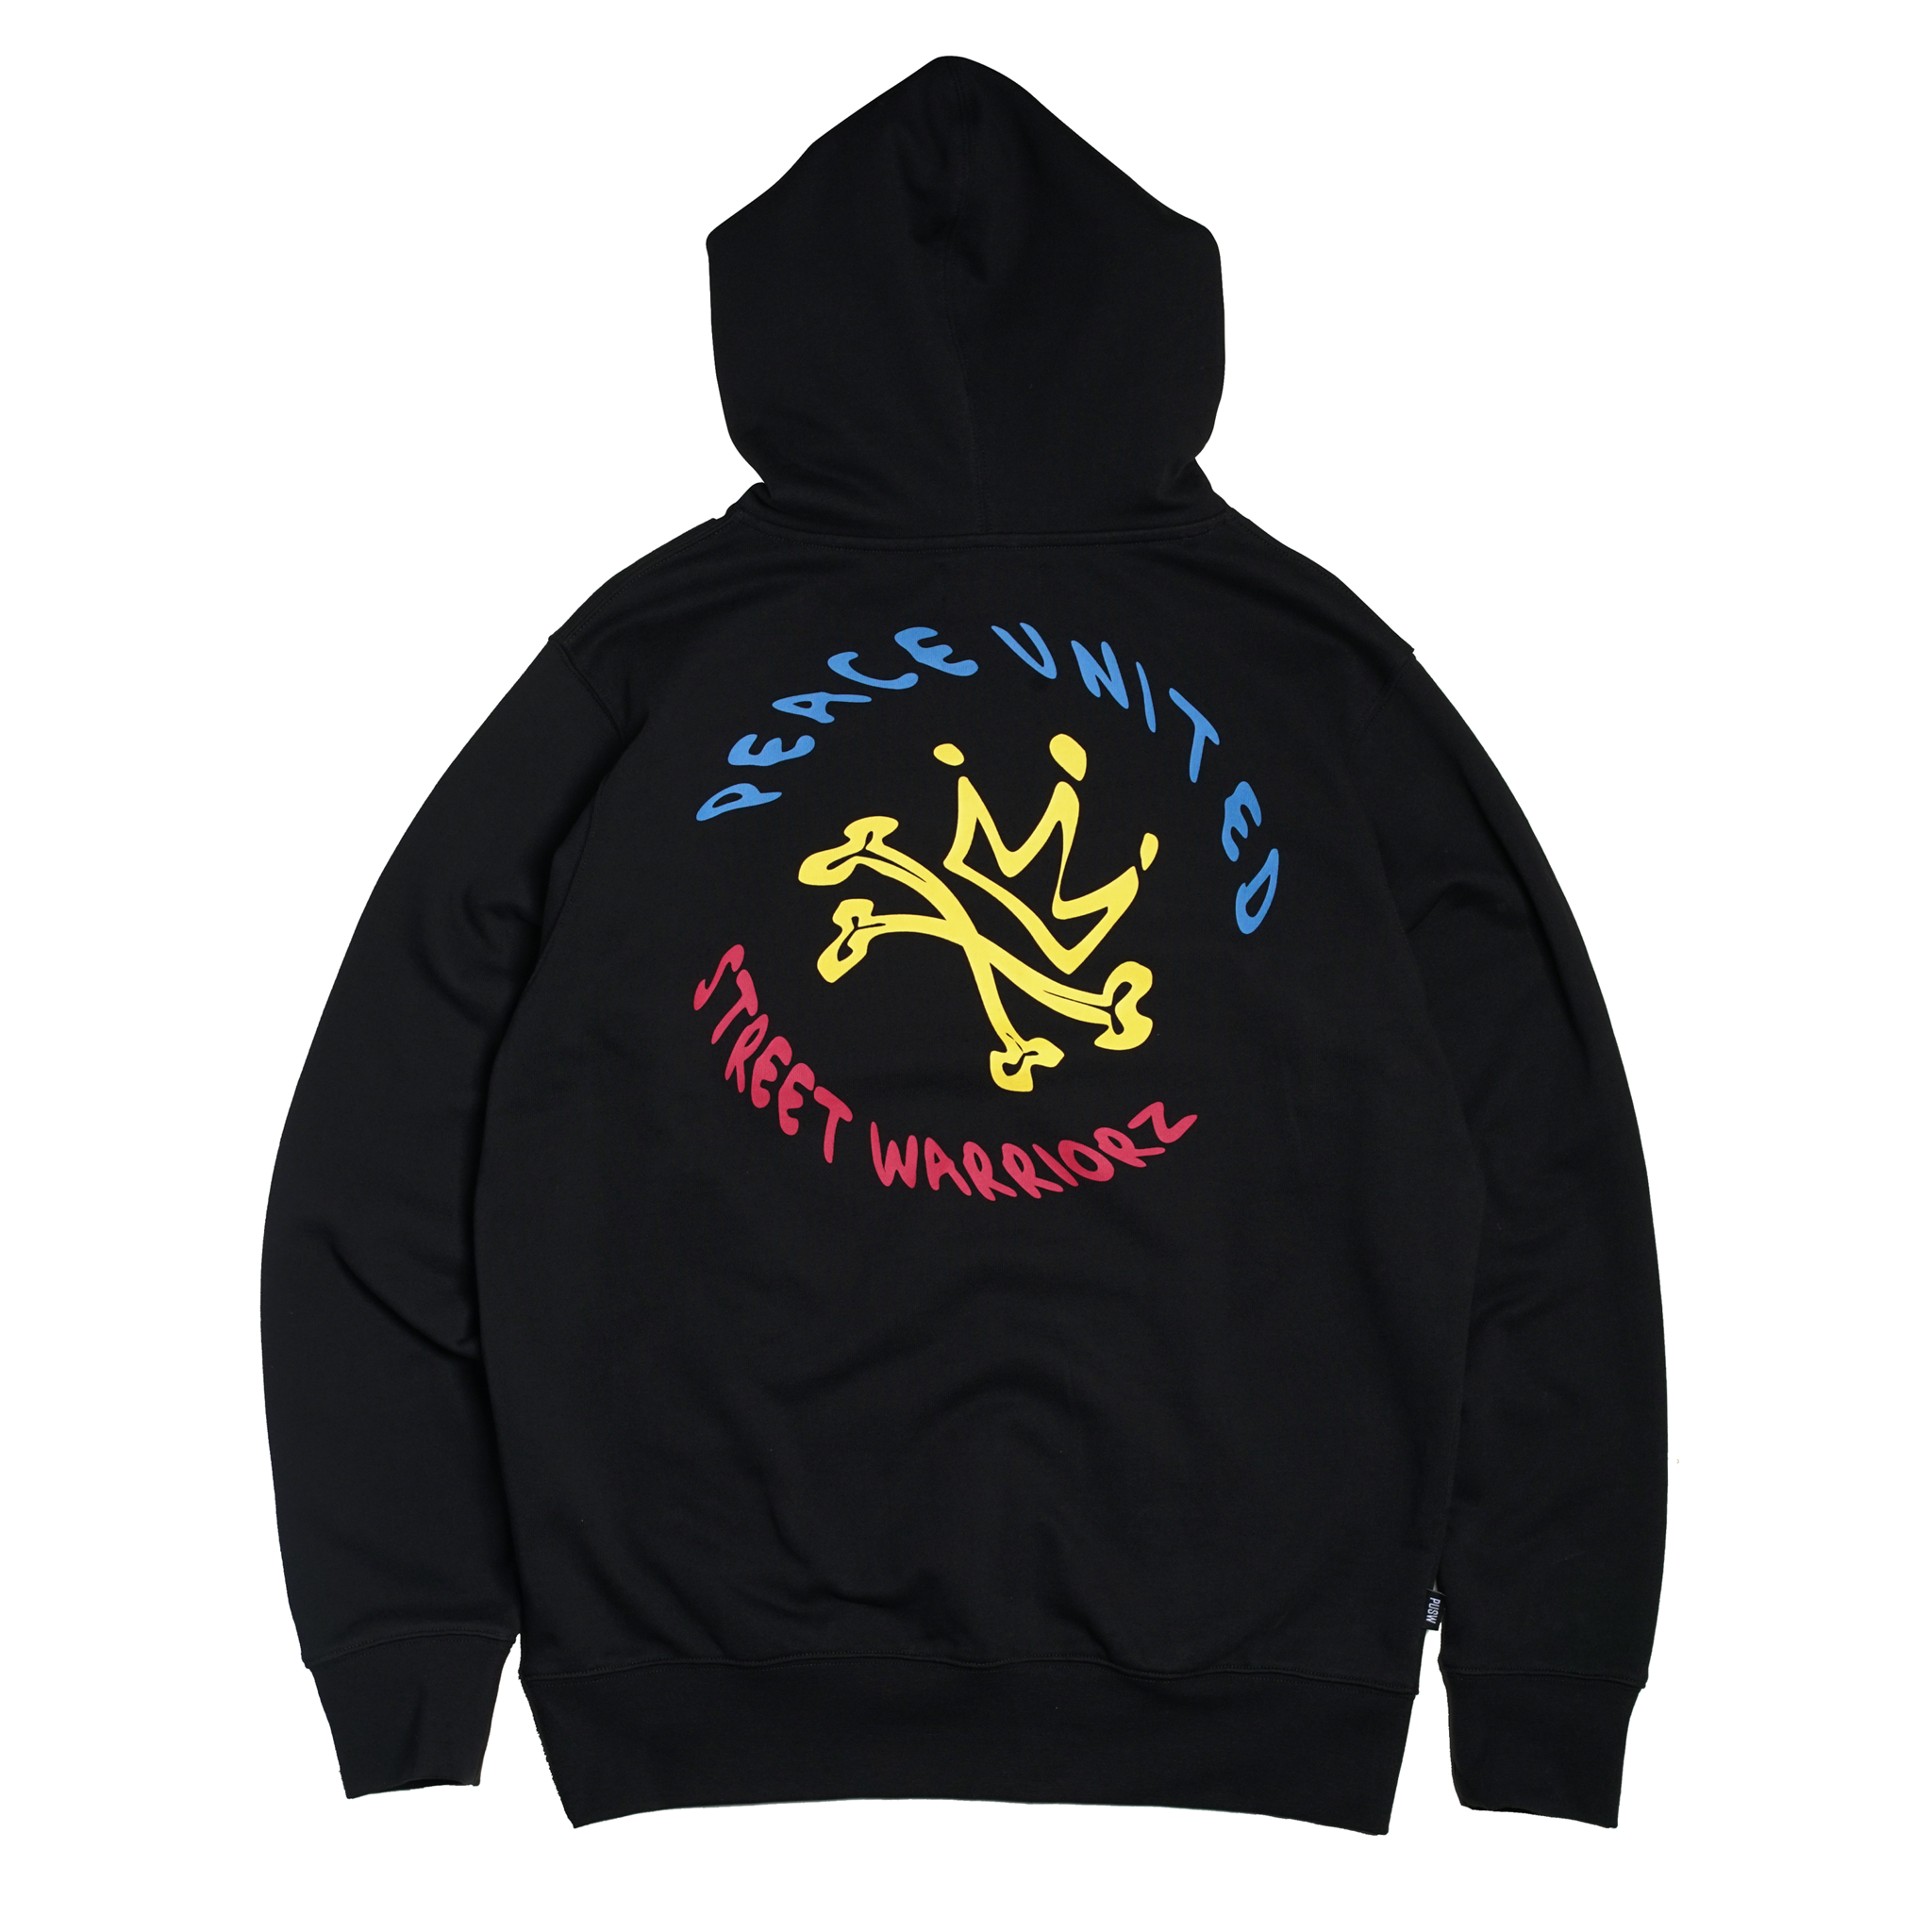 PUSW Colorz Hoodie